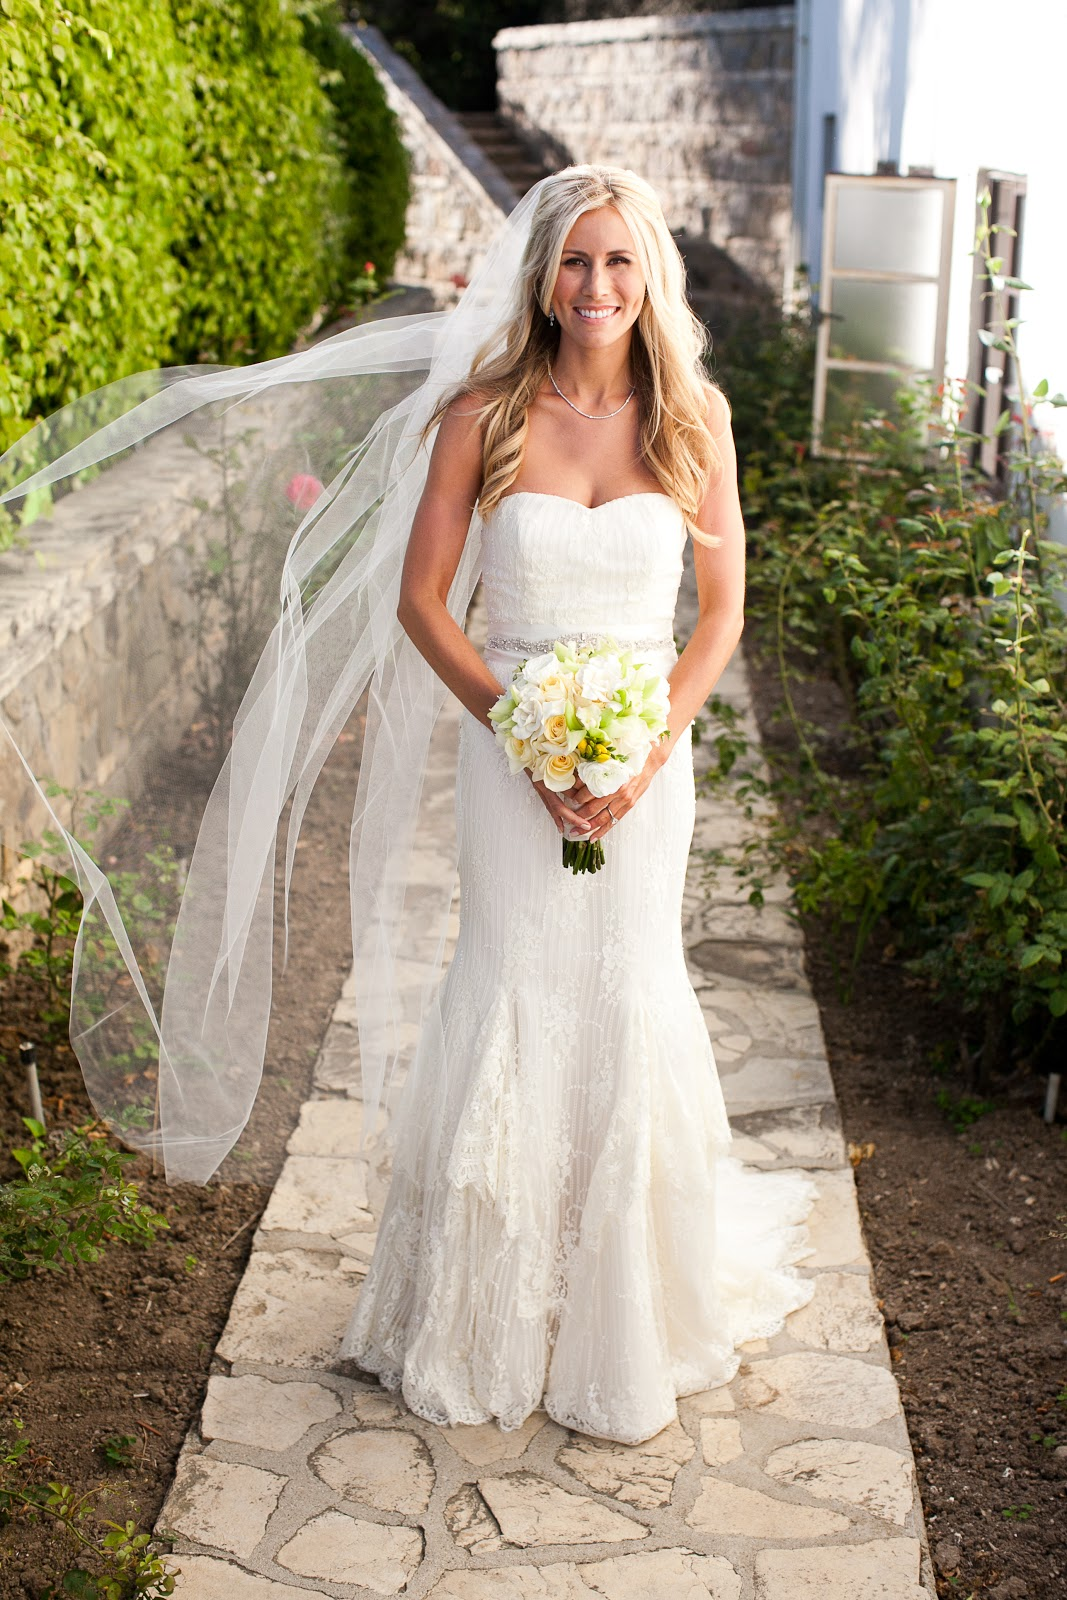 Pics For > Most Beautiful Brides Of All Time